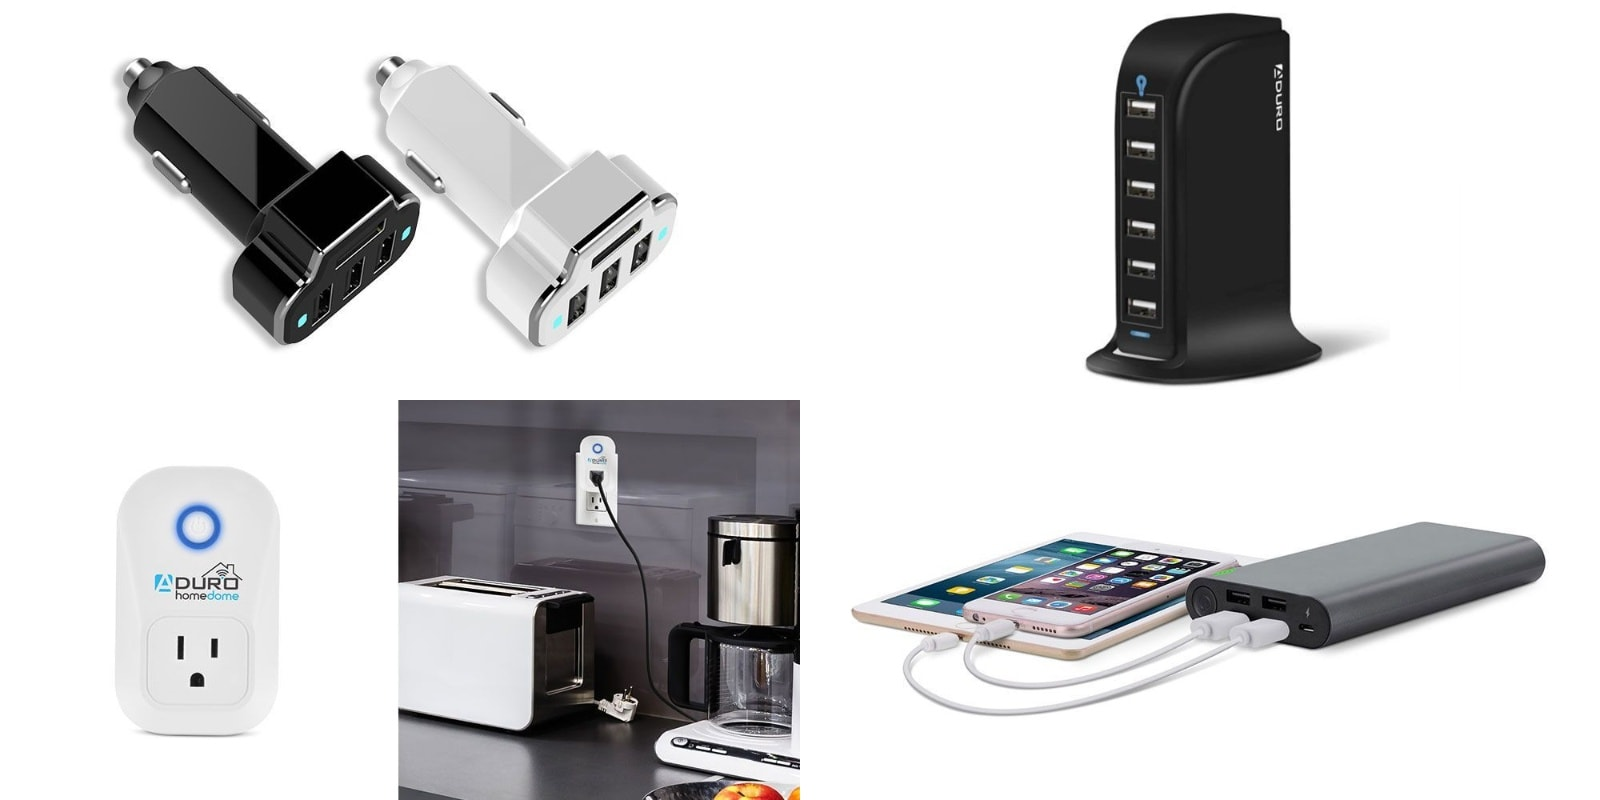 power charging roundup 02/20/20